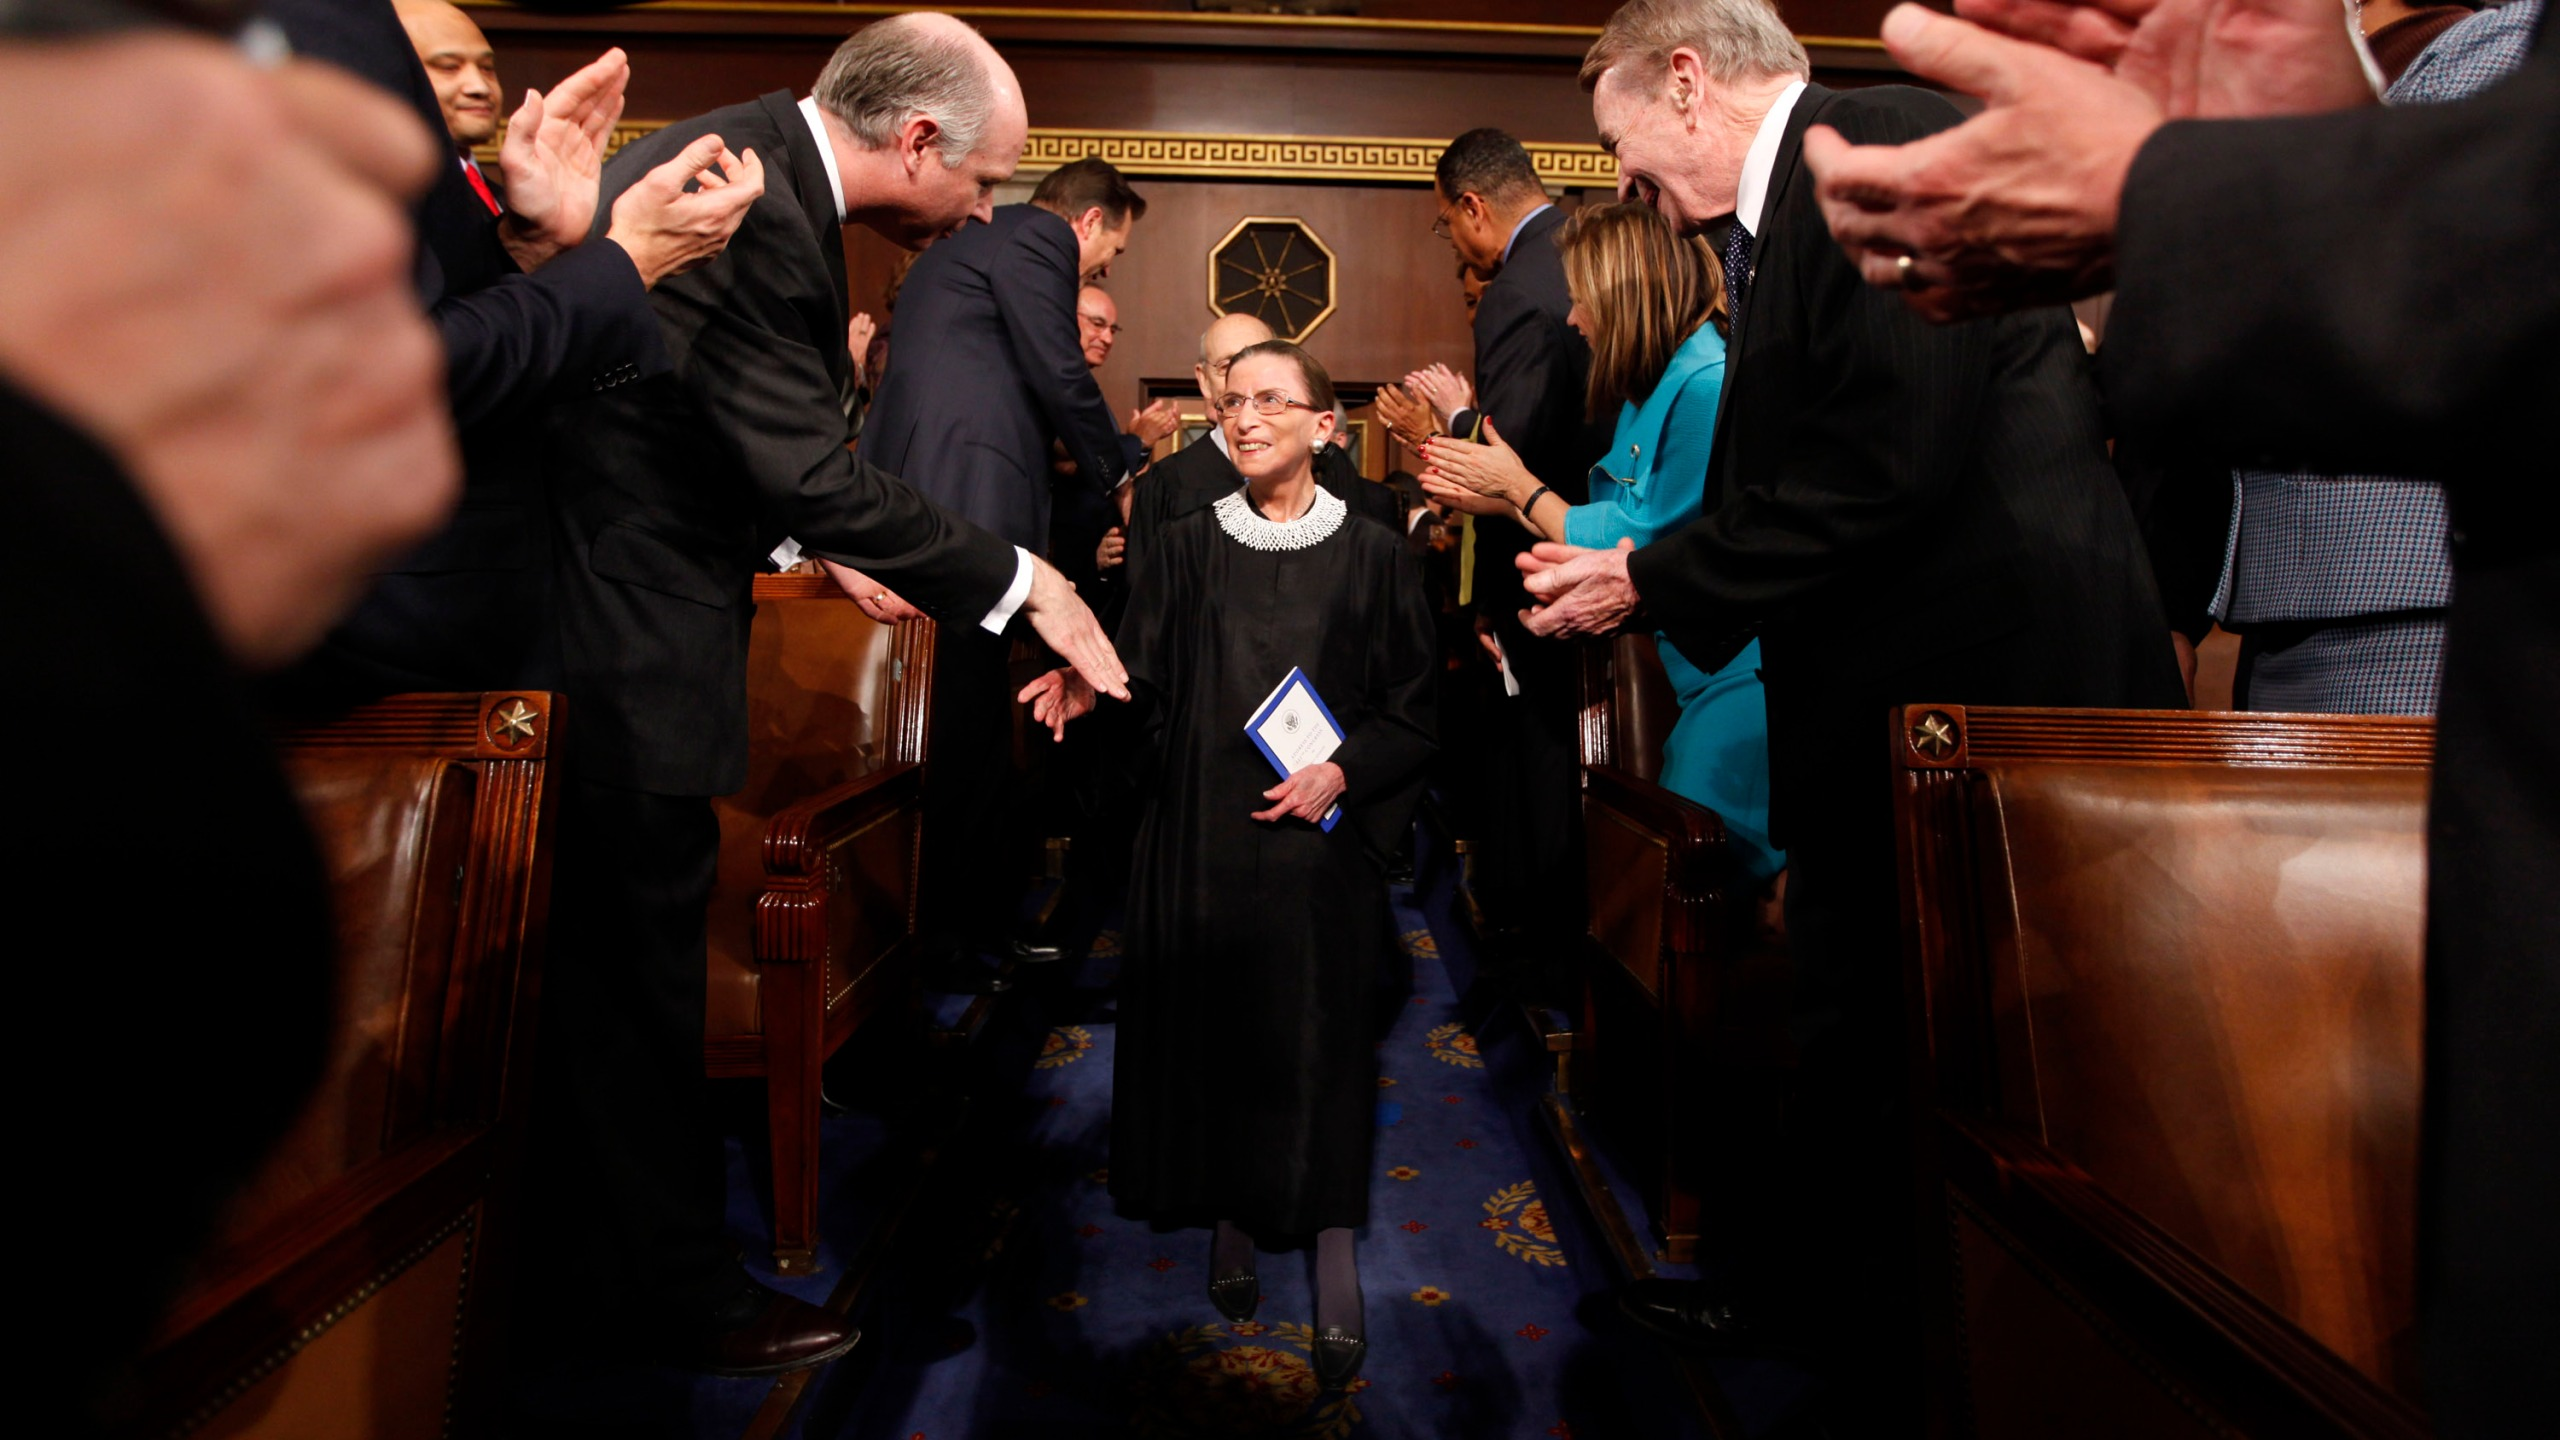 Associate Supreme Court Justice Ruth Bader Ginsburg arrives for President Barack Obama's address to a joint session of Congress in the House Chamber of the U.S. Capitol on Feb. 24, 2009. (Pablo Martinez Monsivais / Getty Images)